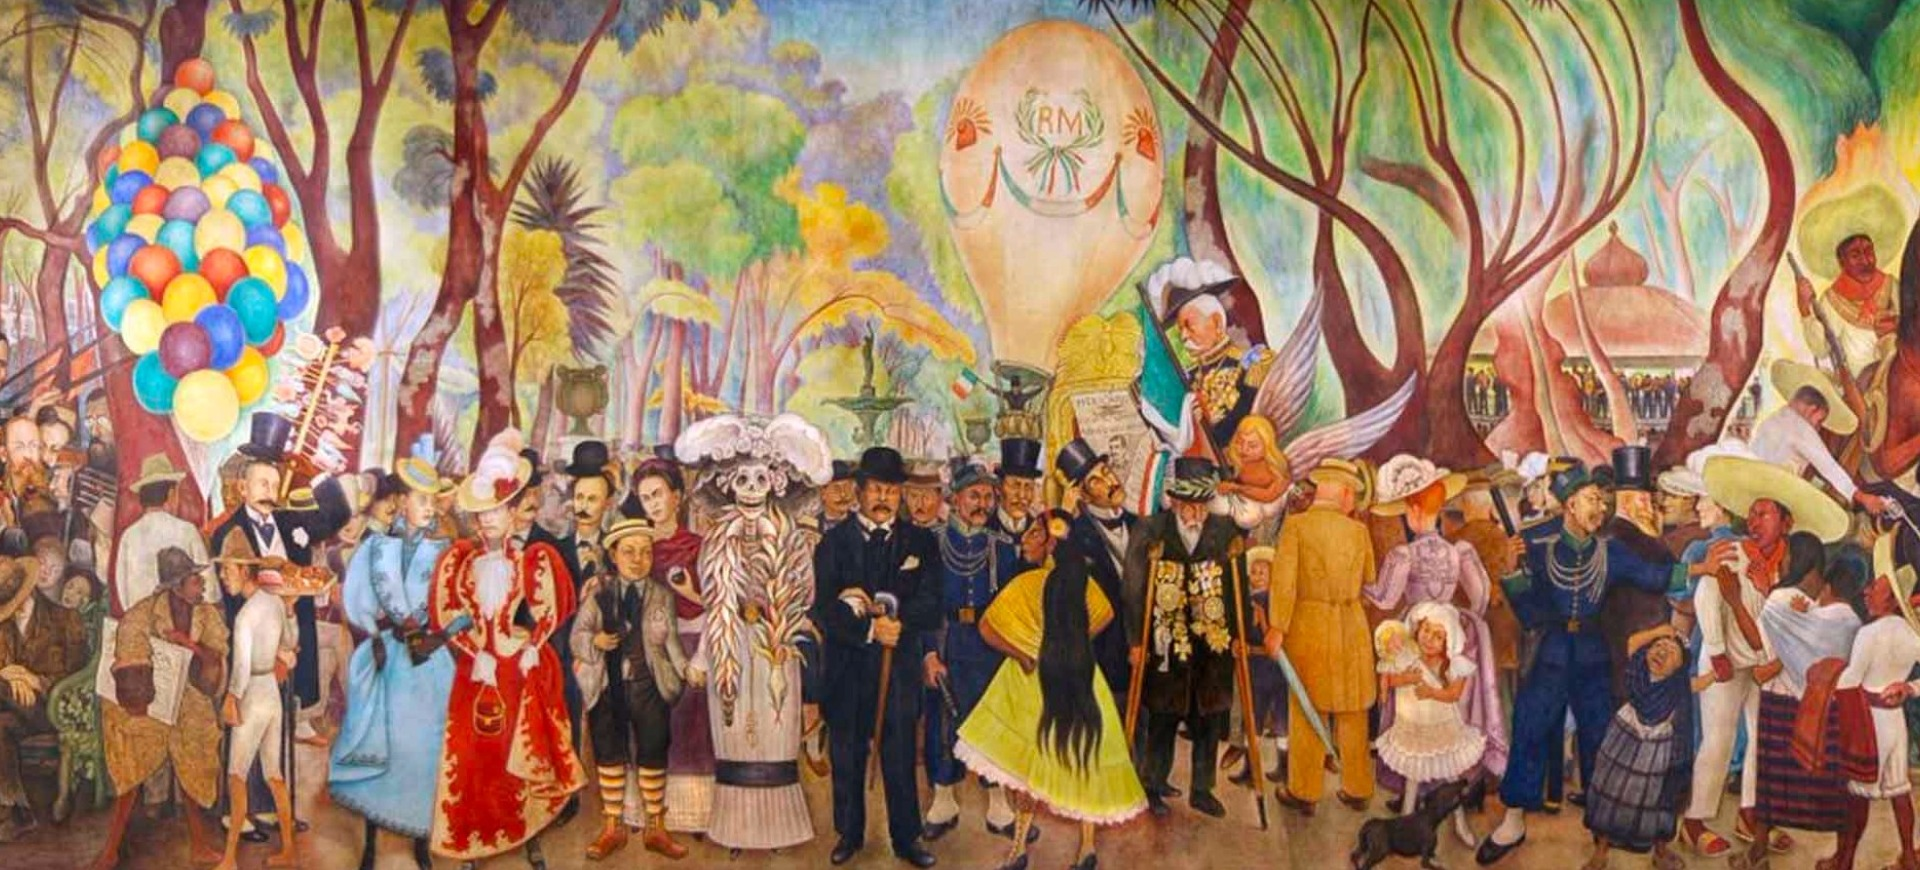 Diego rivera murales images galleries for Mural diego rivera